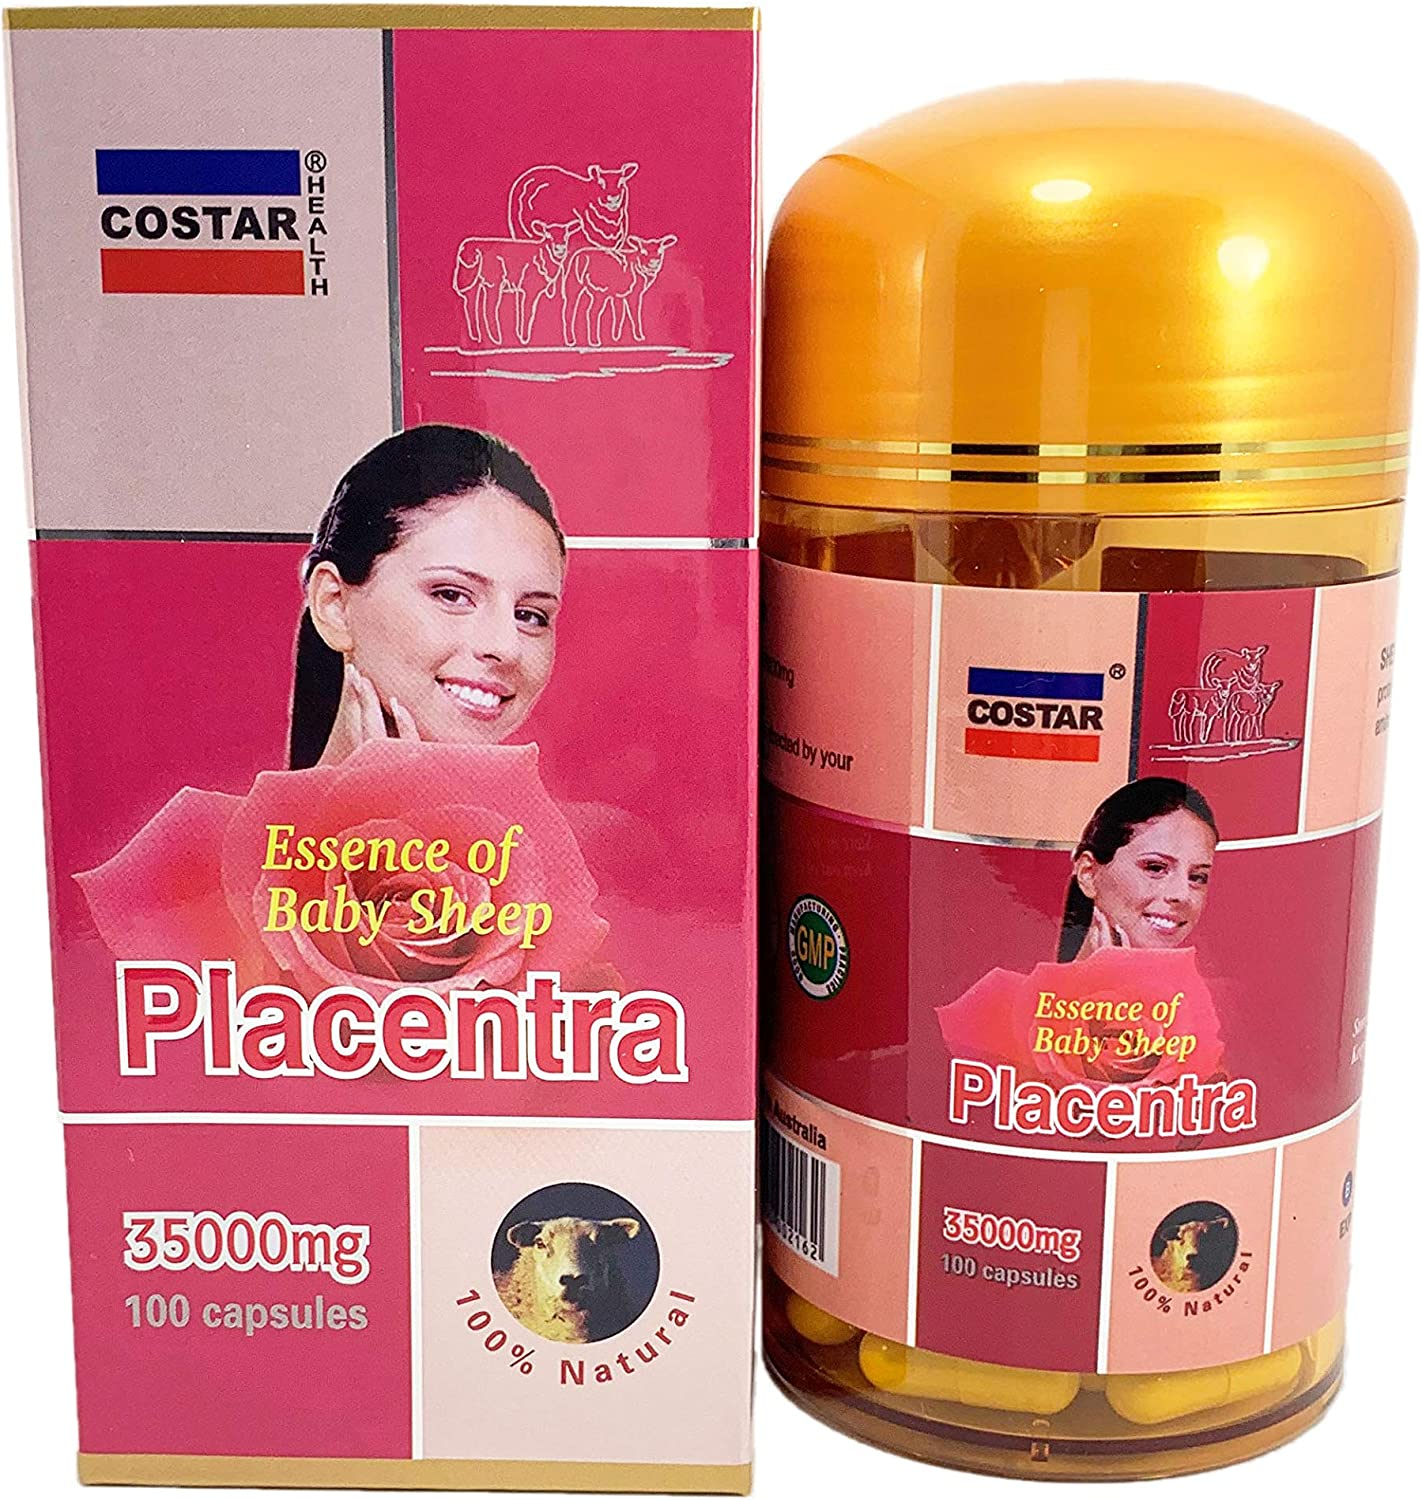 Costar Sheep Placenta Extract 35000mg 100 Capsules Australian Made Baby Sheep Essential